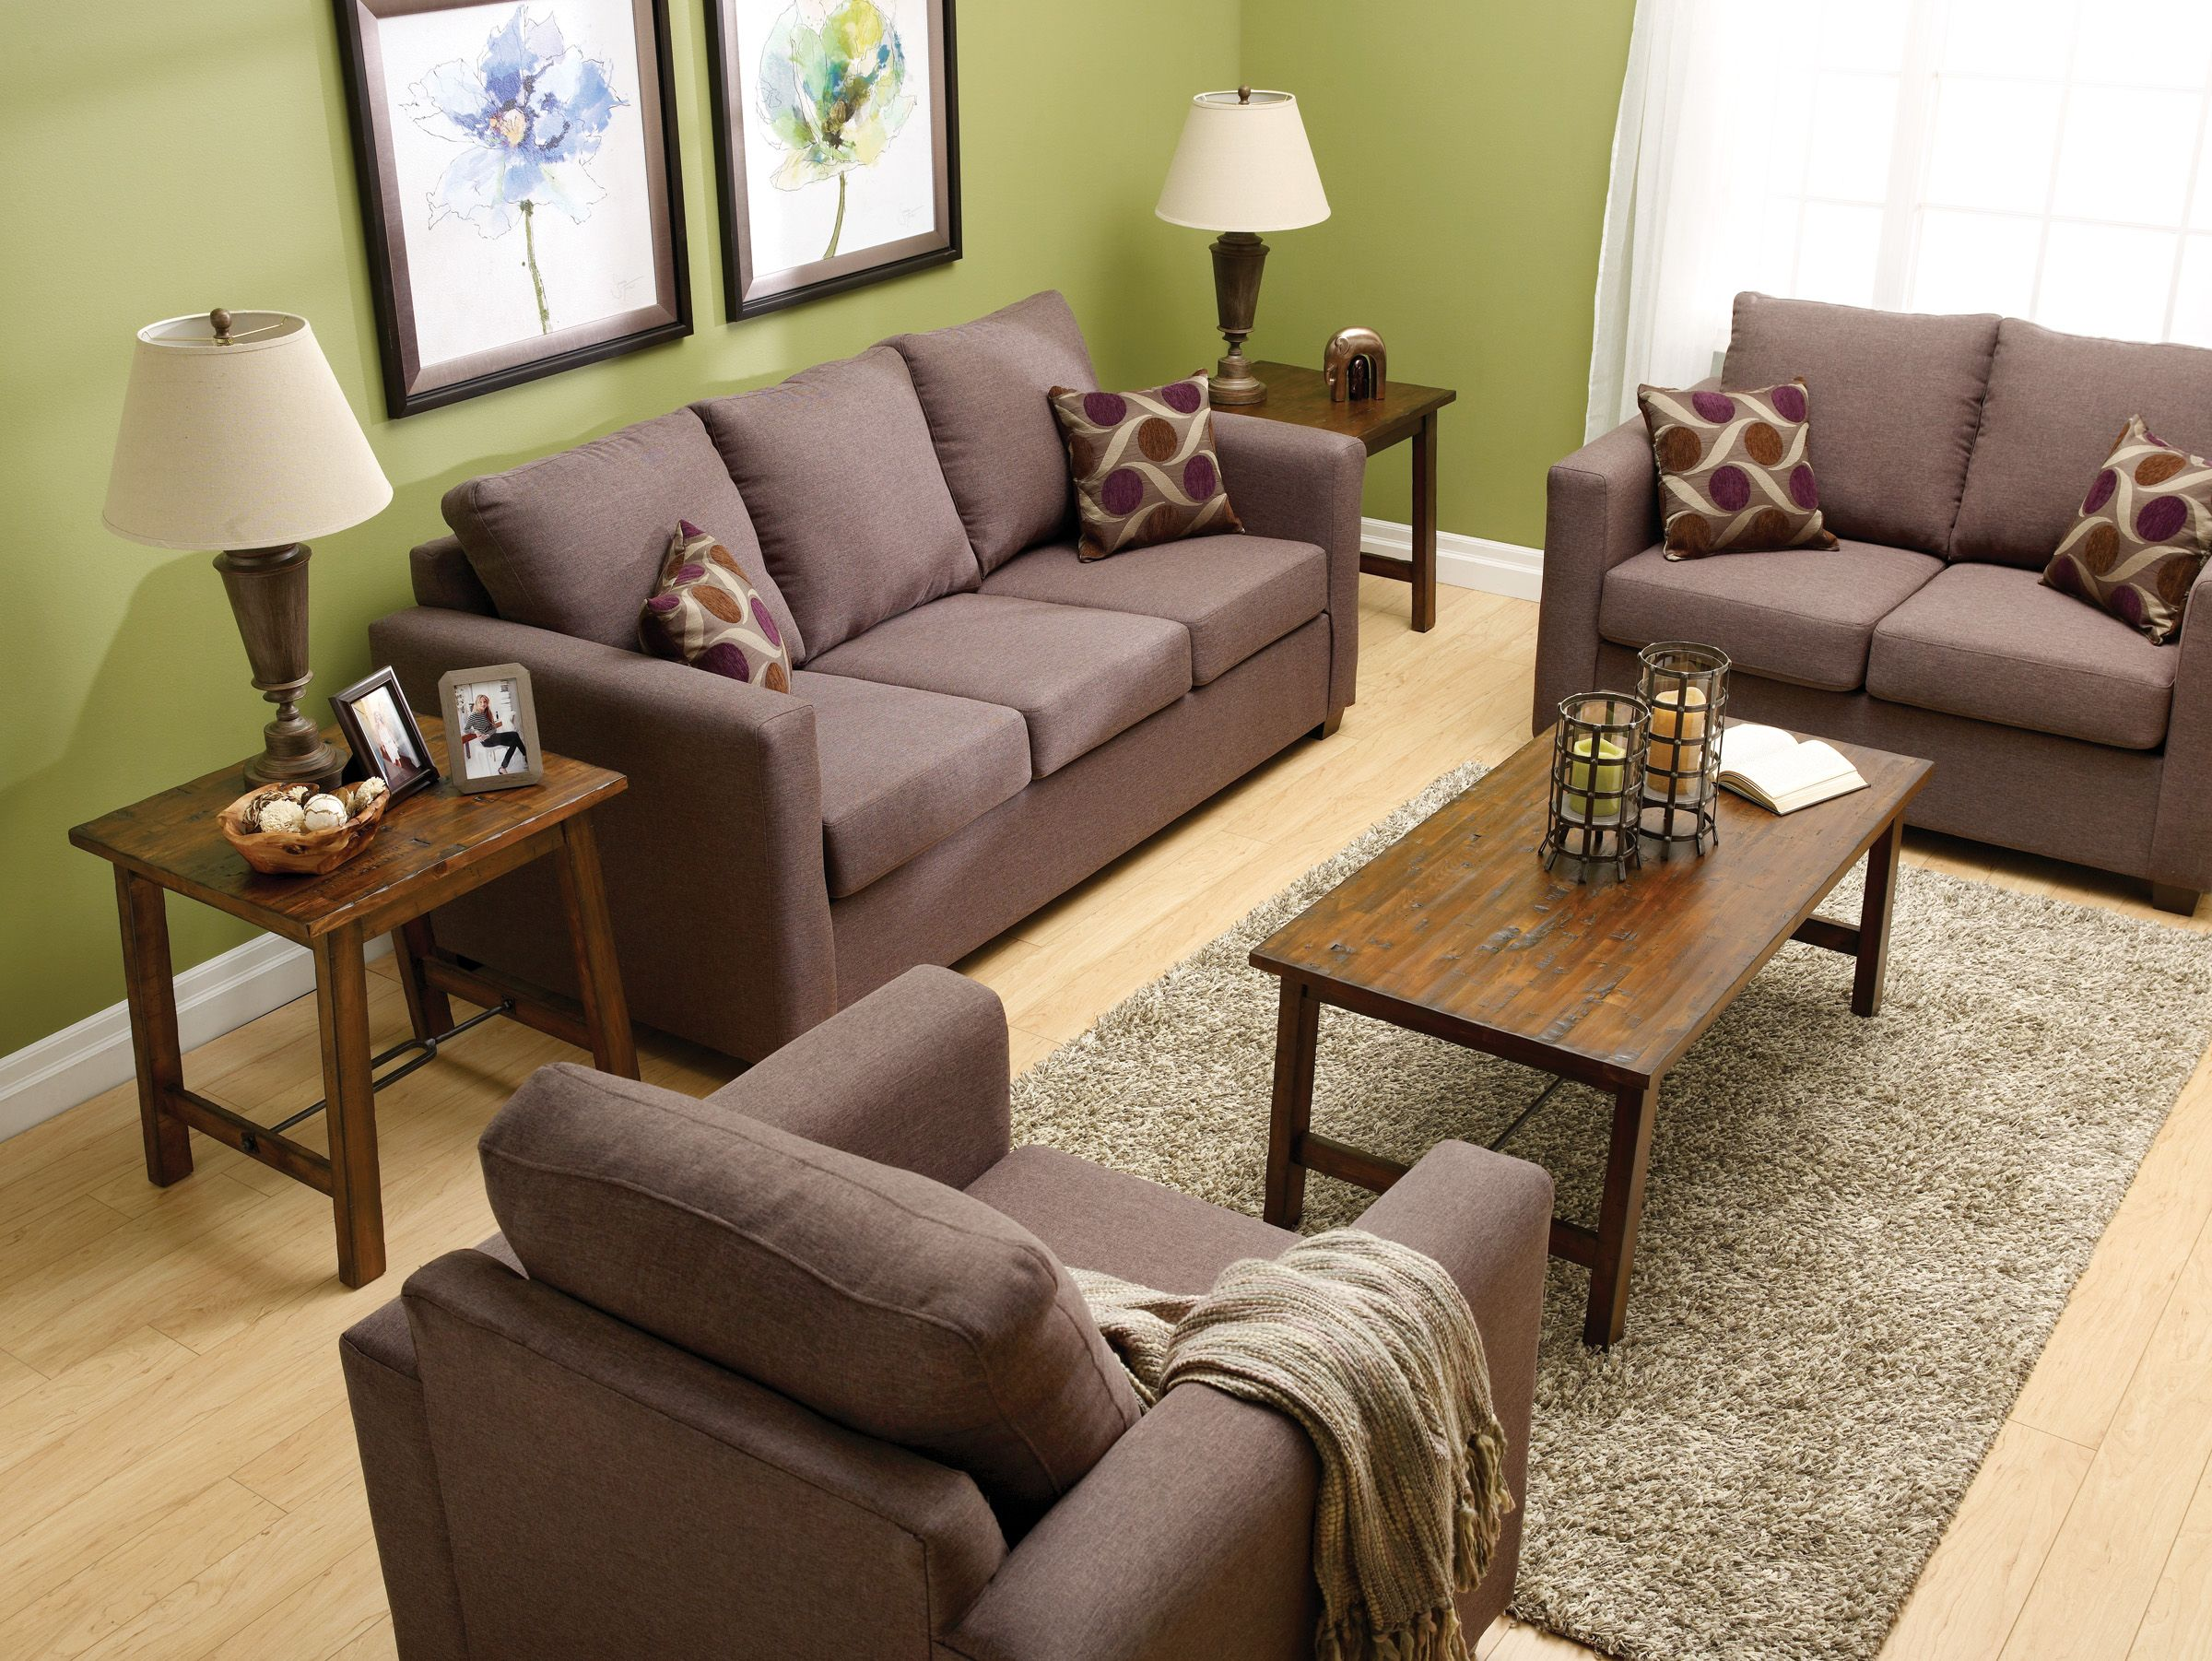 Aman furniture hayden collection in antelope we have this canadian made sofa and chair at reliable home furniture